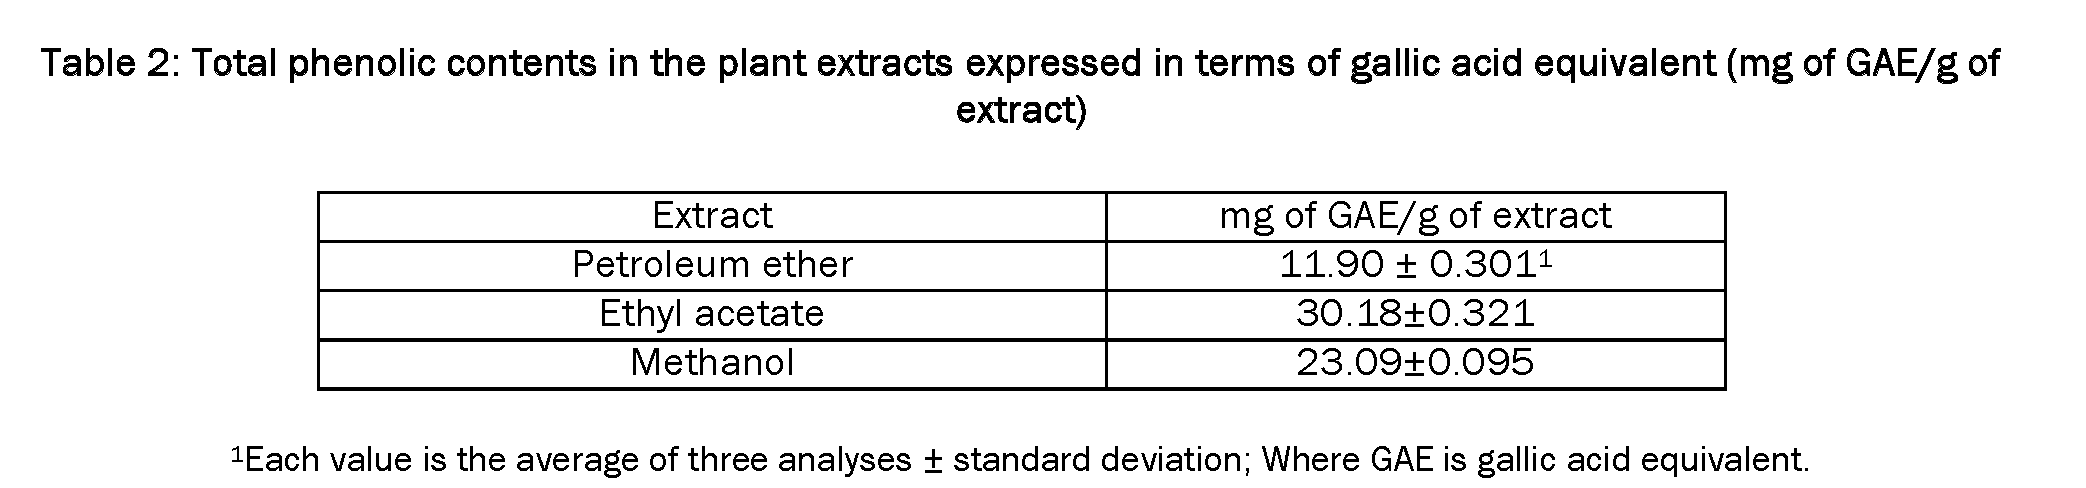 Pharmacognsoy-Phytochemistry-Total-phenolic-contents-in-the-plant-extracts-expressed